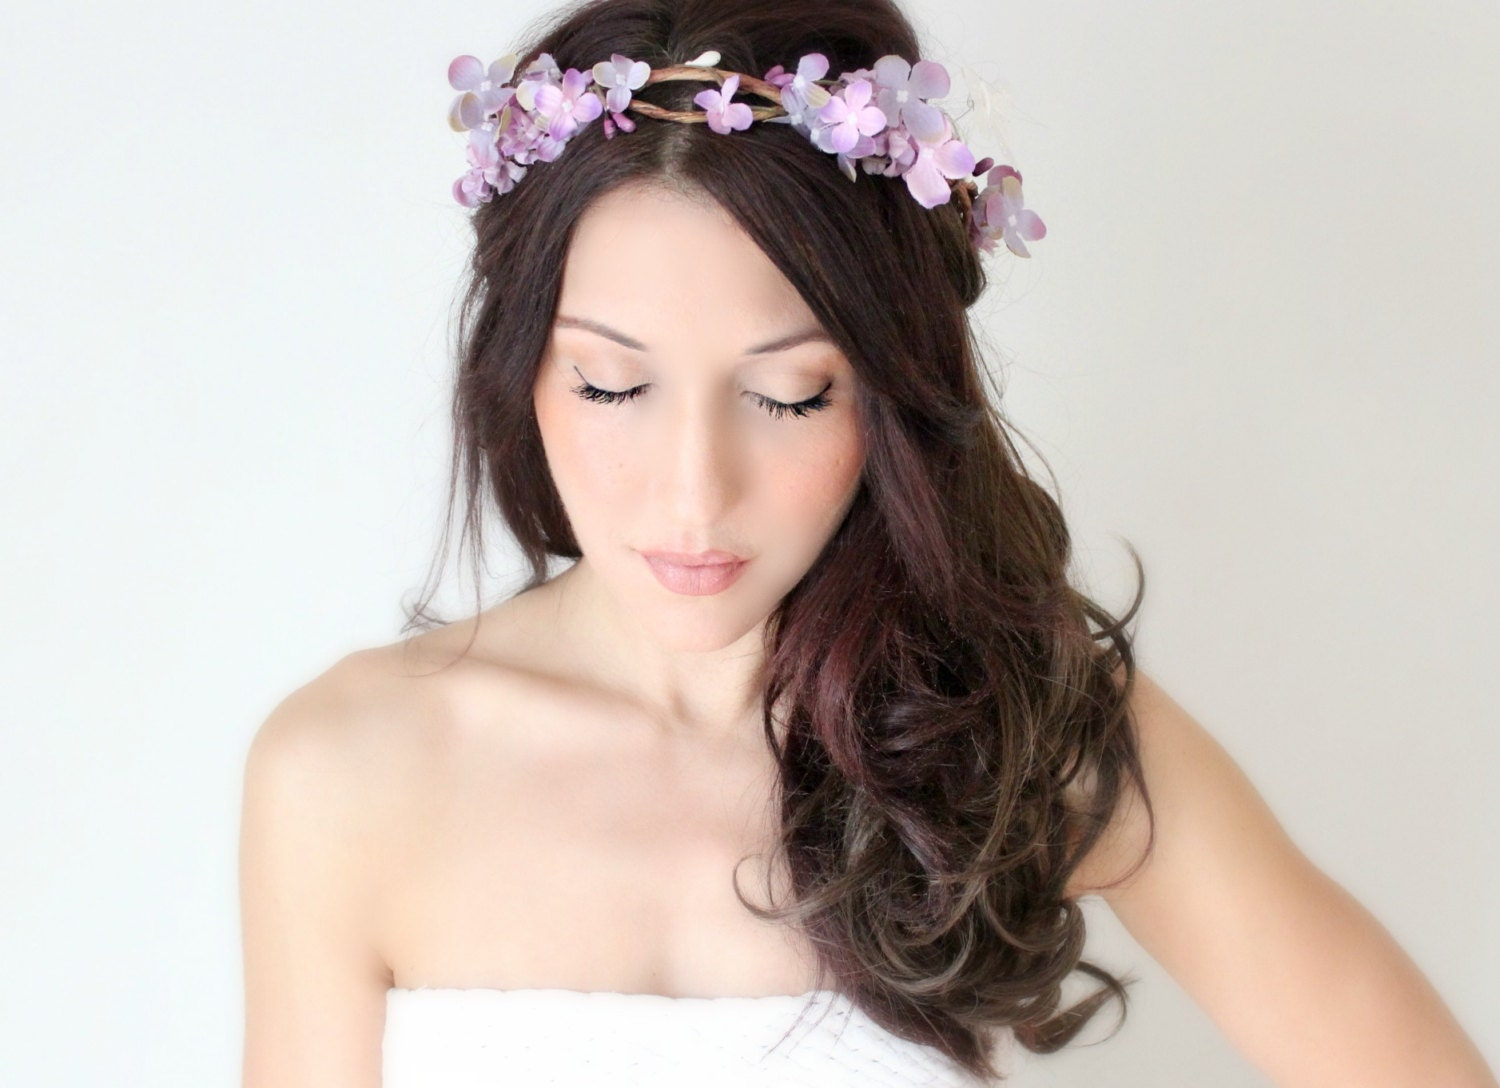 Real Flower Bridal Hair Accessories : Items similar to purple flower crown wedding headpiece